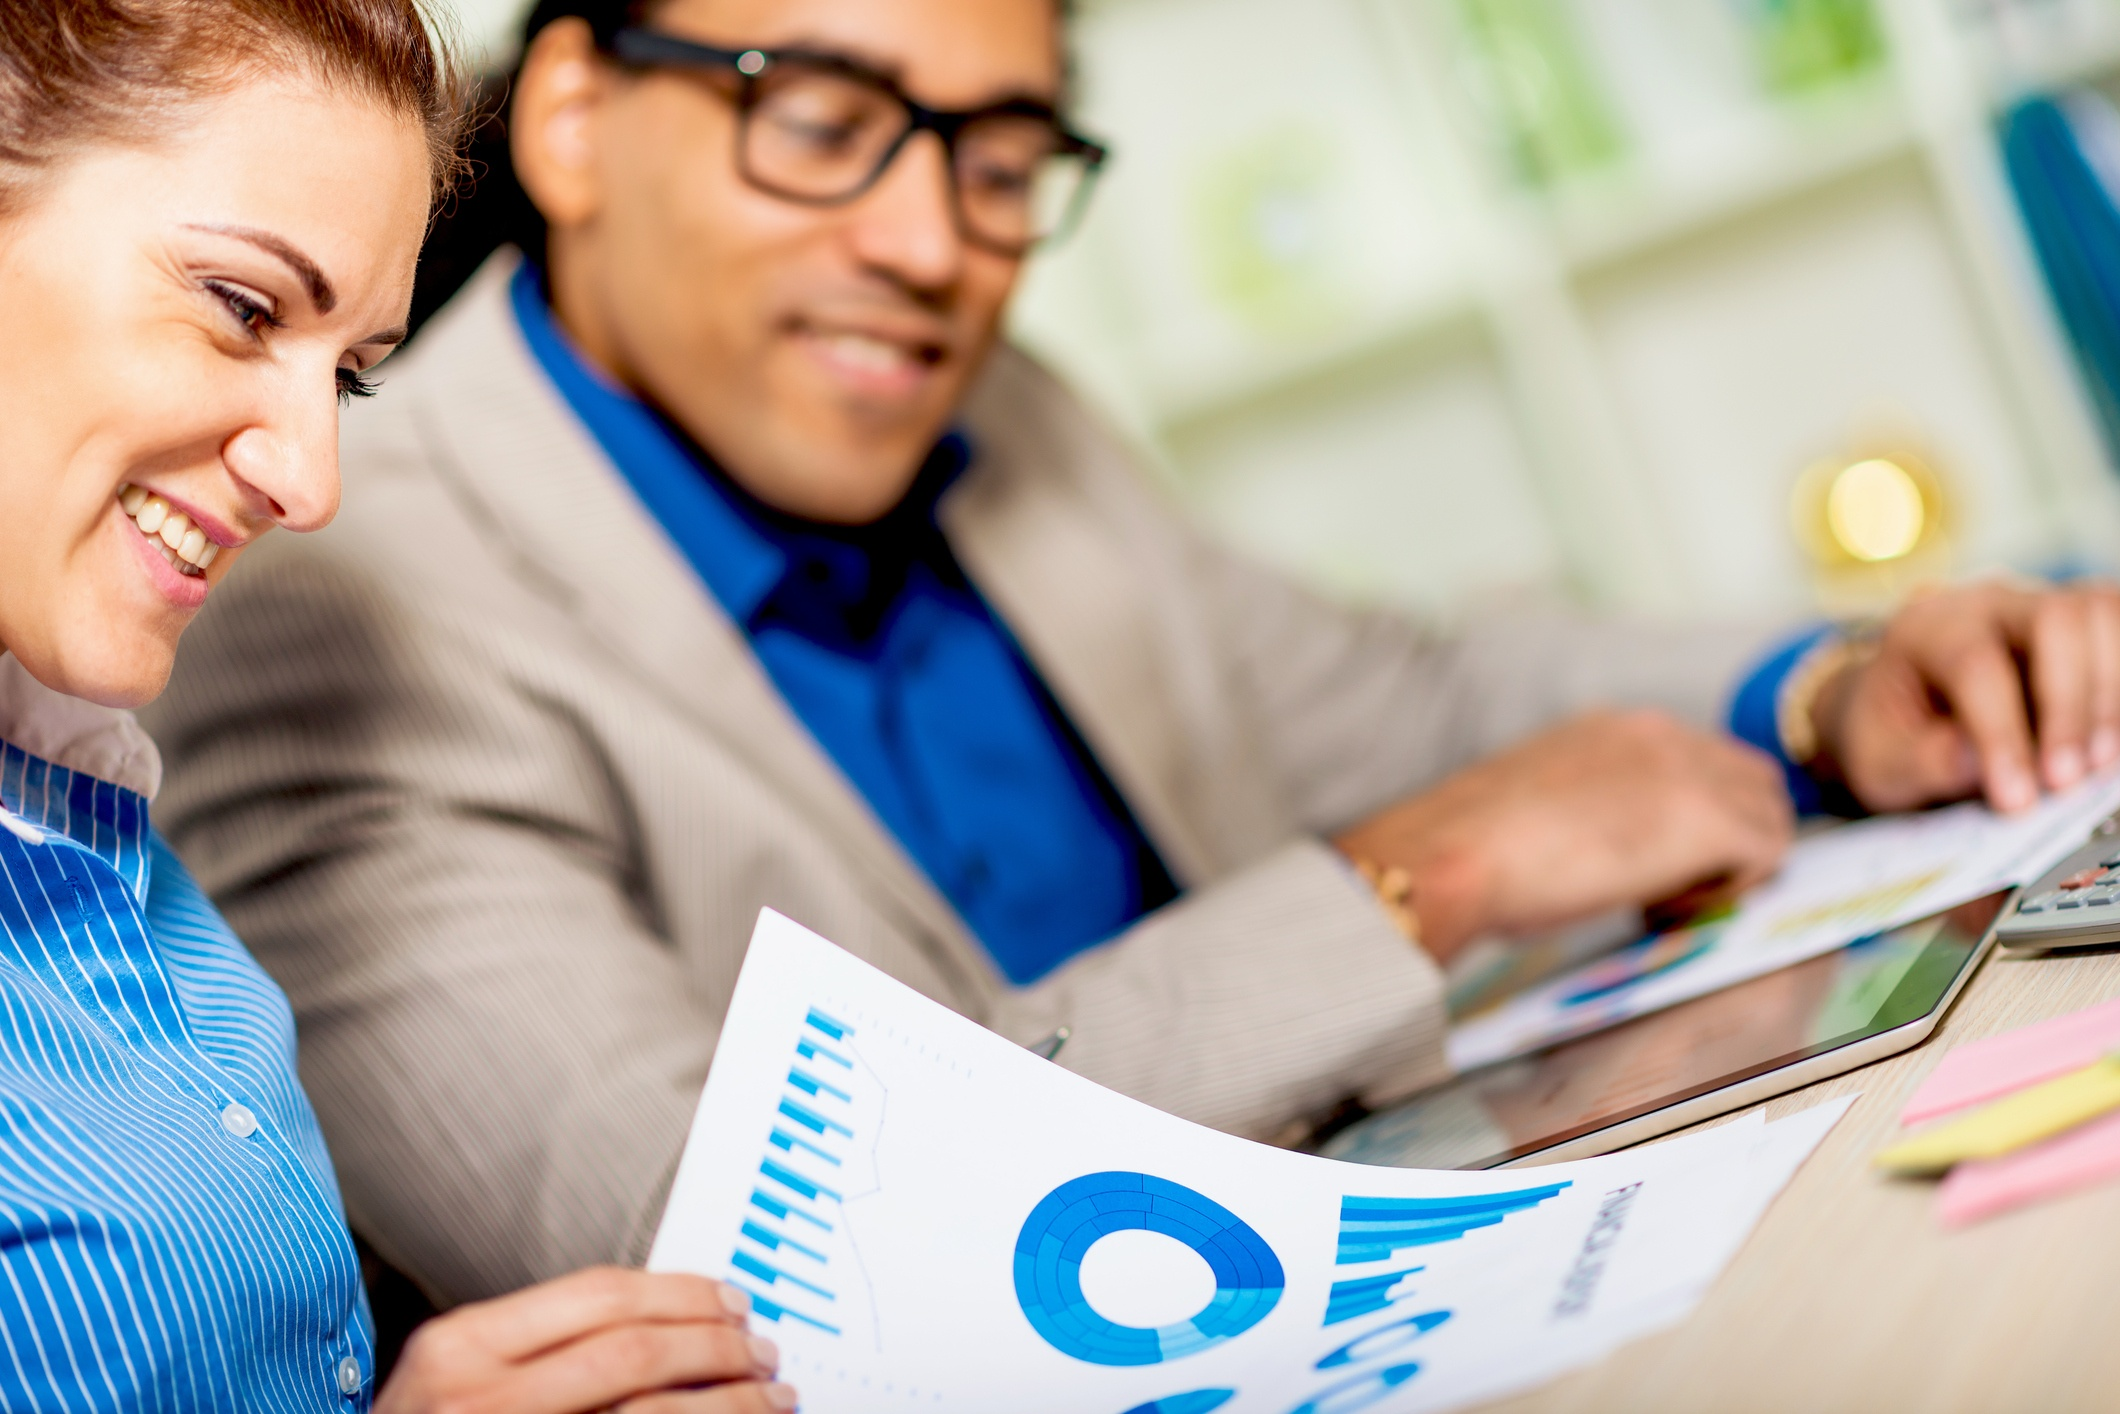 woman and man looking over reports.jpg